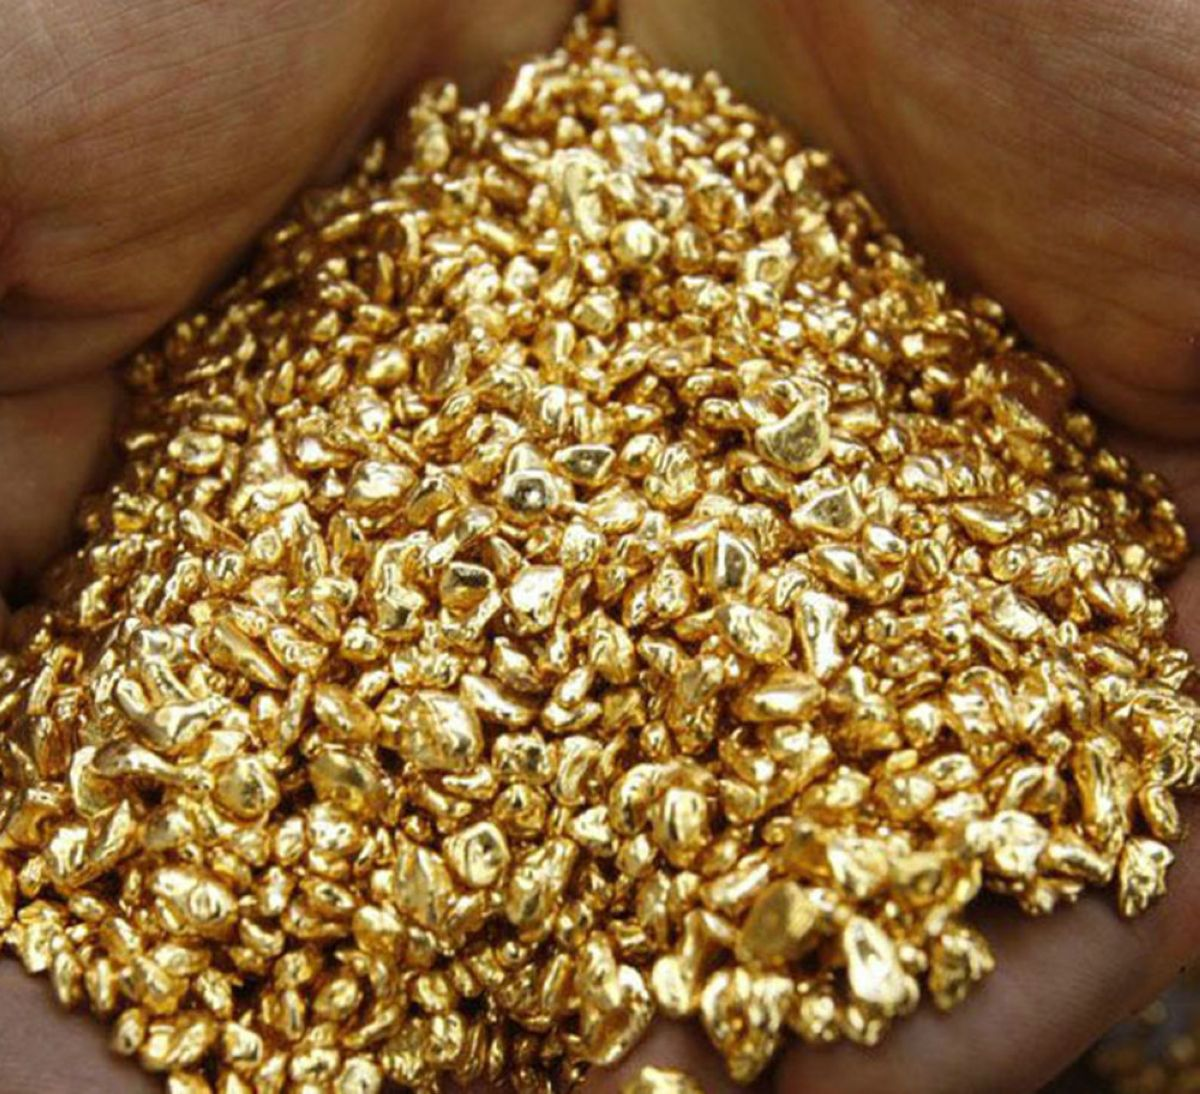 Purest natural gold for sale